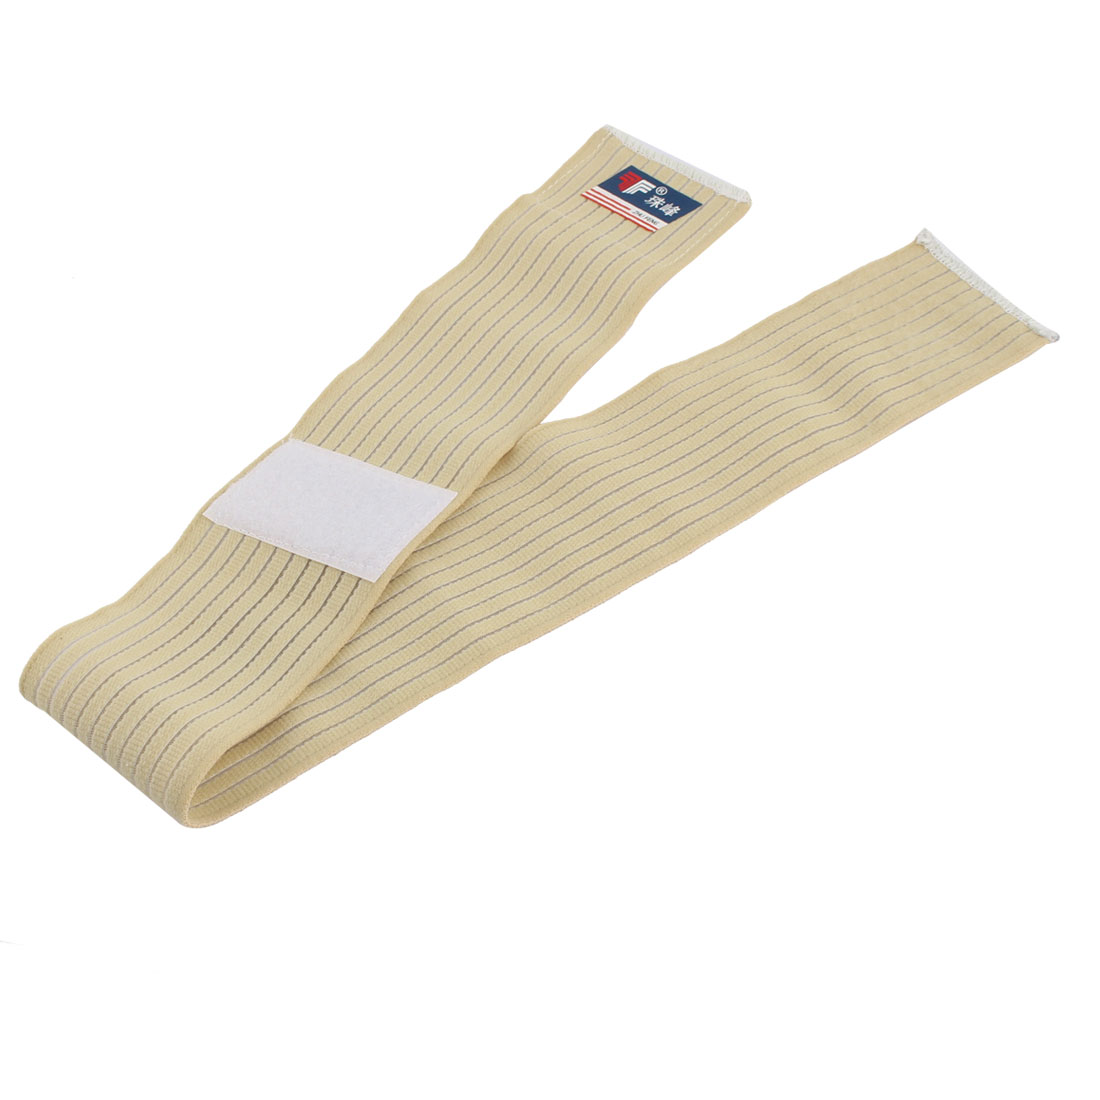 Unisex Outdoor Sports Elastic Fiber Stripe Pattern Ankle Support Strap Beige